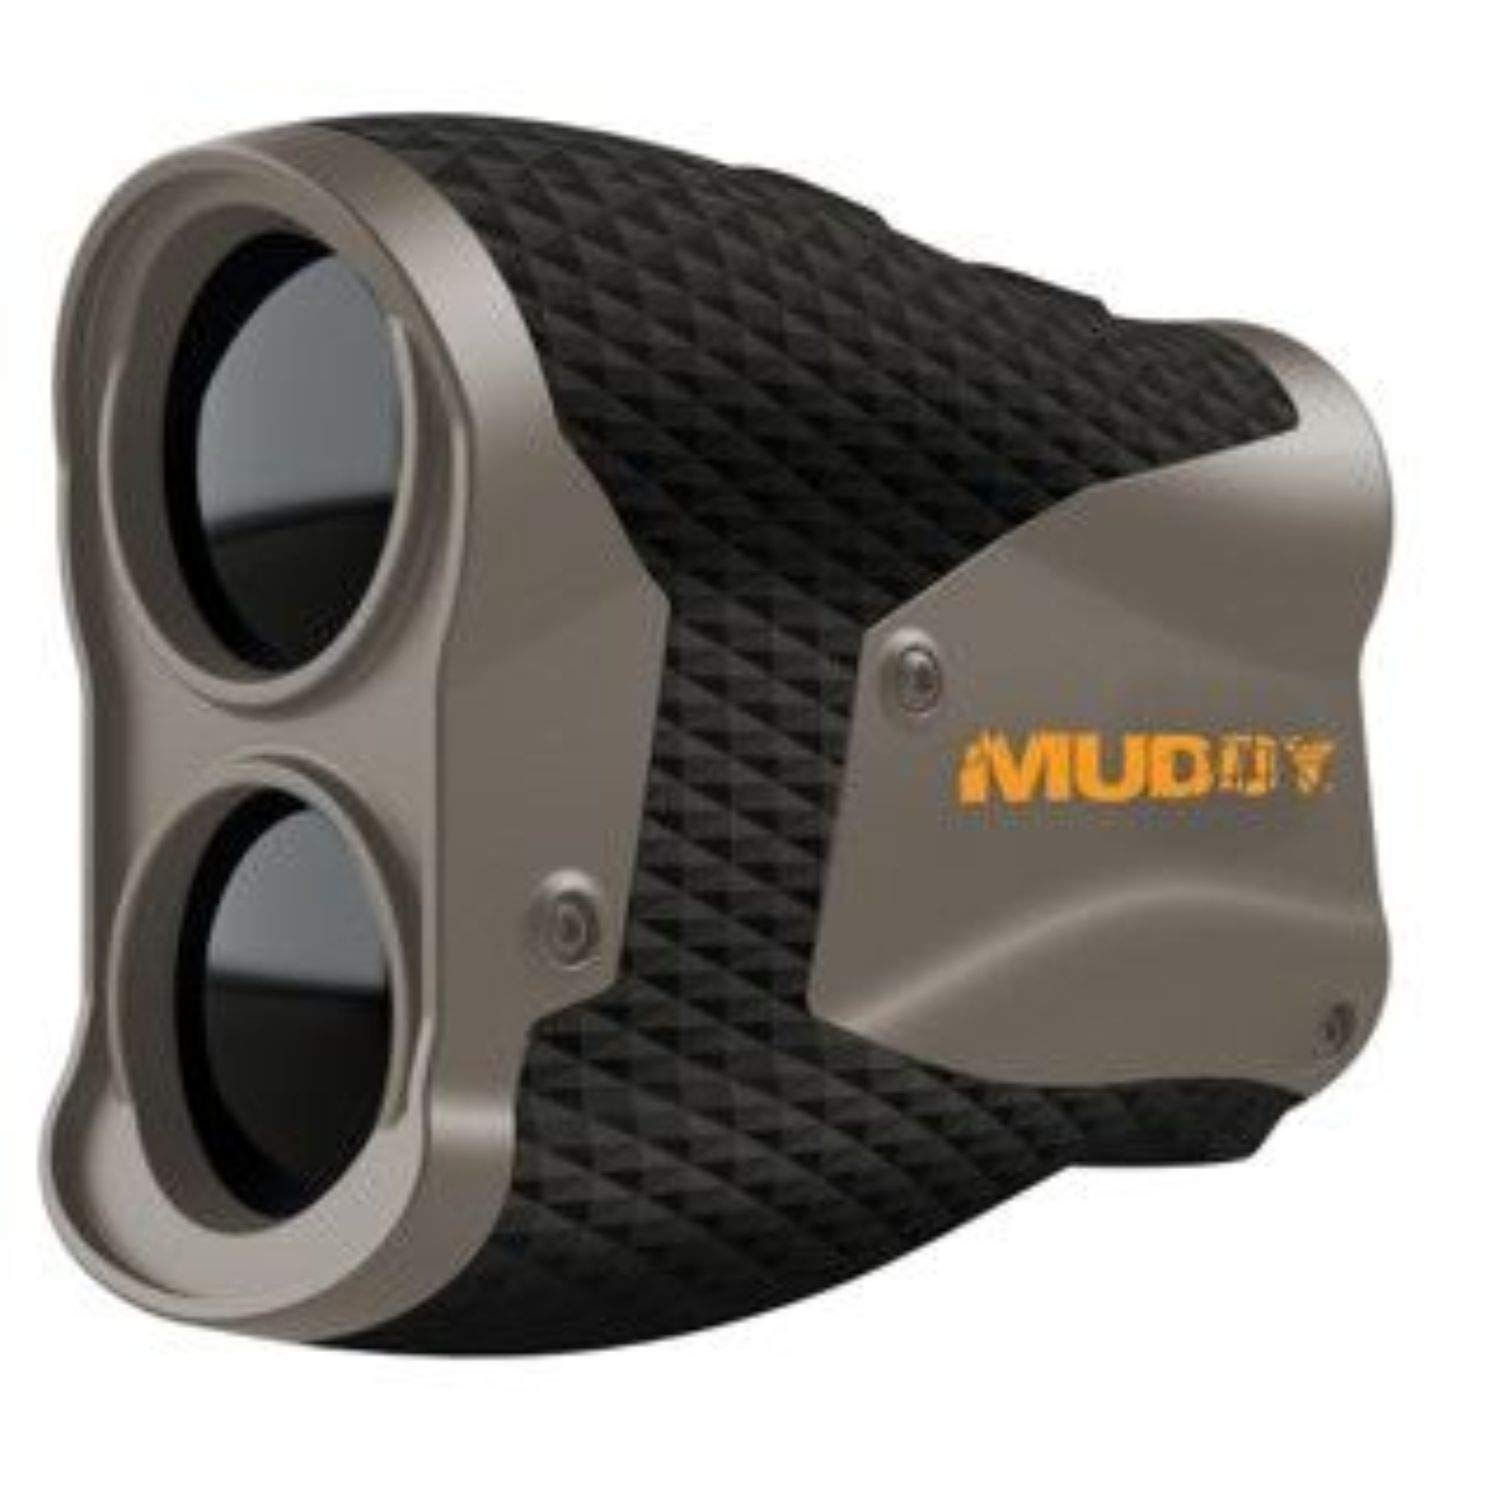 Muddy Laser Range Finder 450yd by Muddy